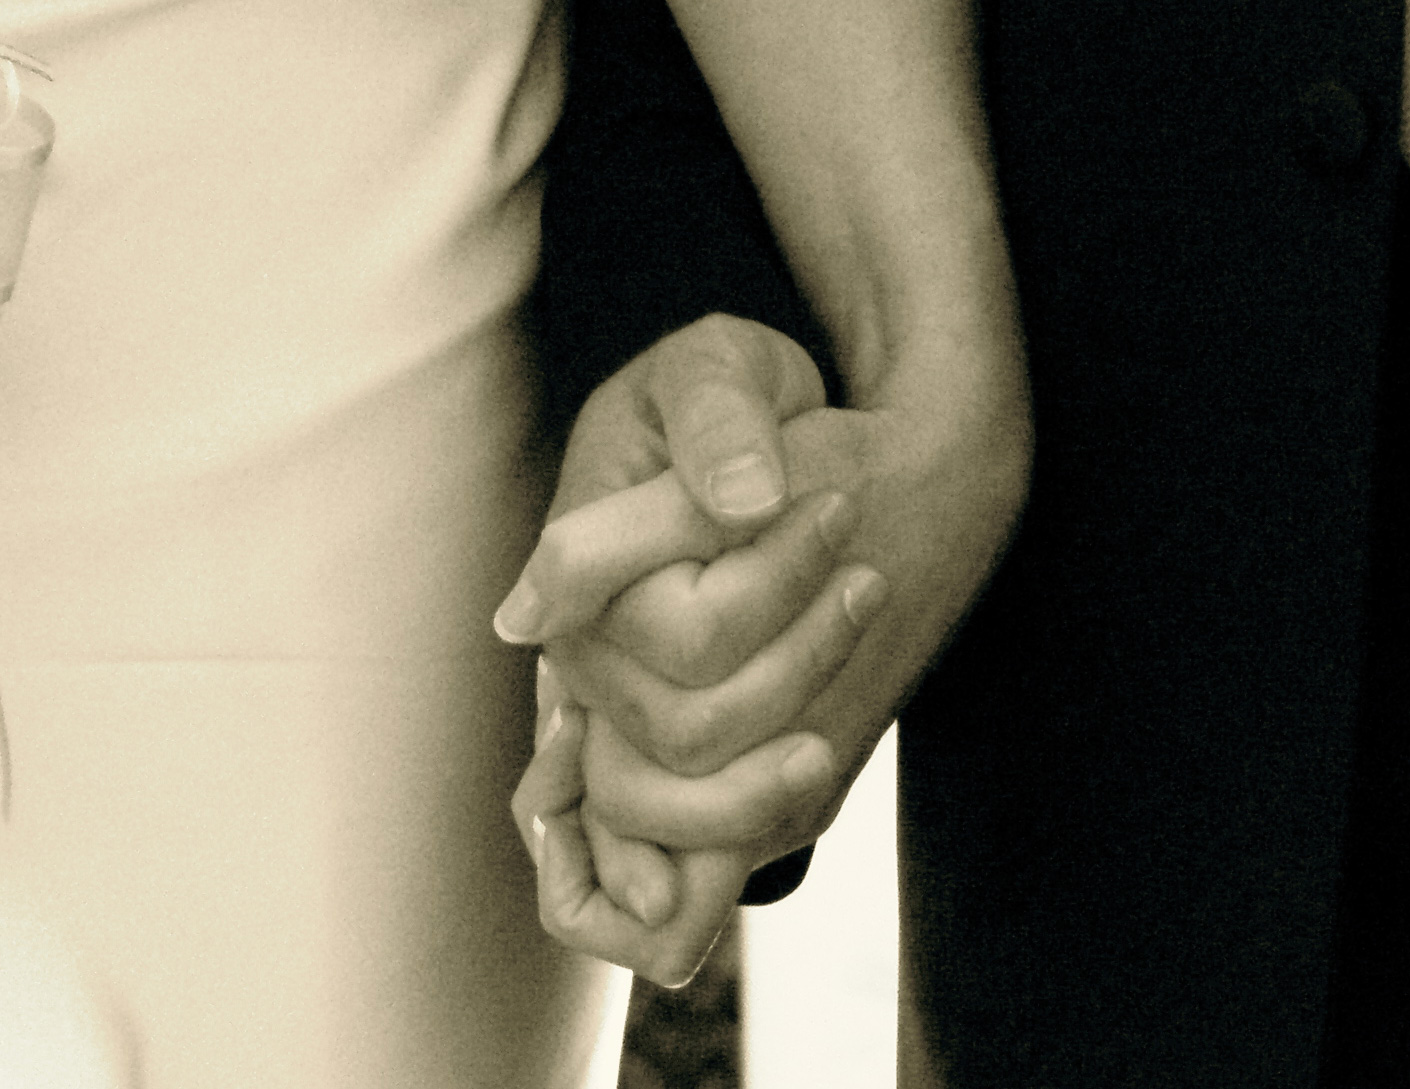 What's your excuse when you are caught holding hands with someone else? (Photo by s349142)